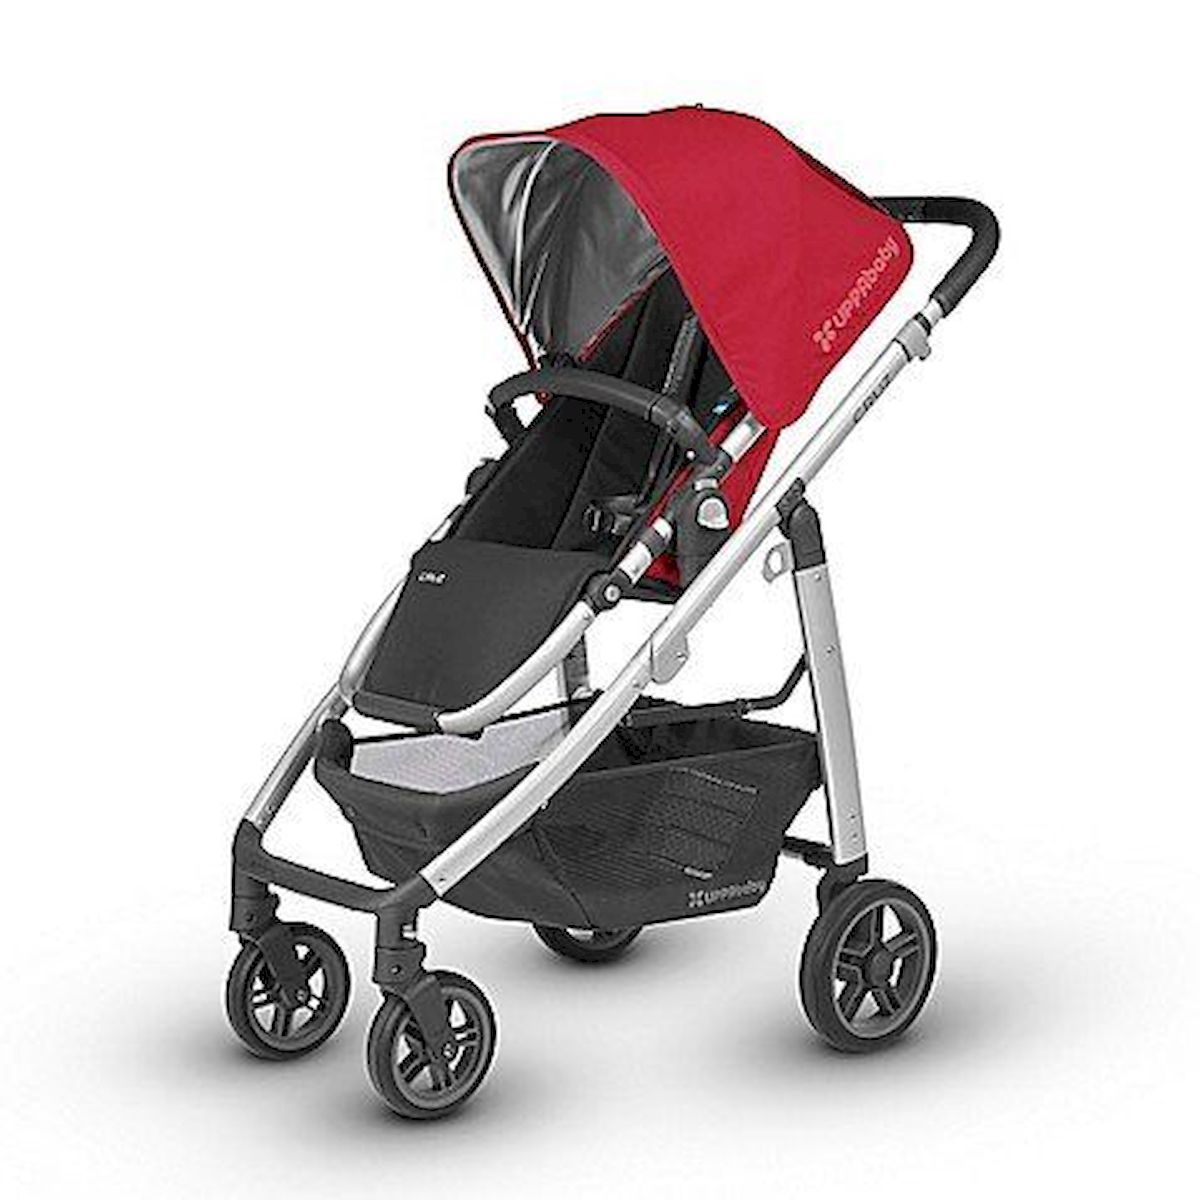 50 Best Baby Stroller Ideas for Your Baby Uppababy